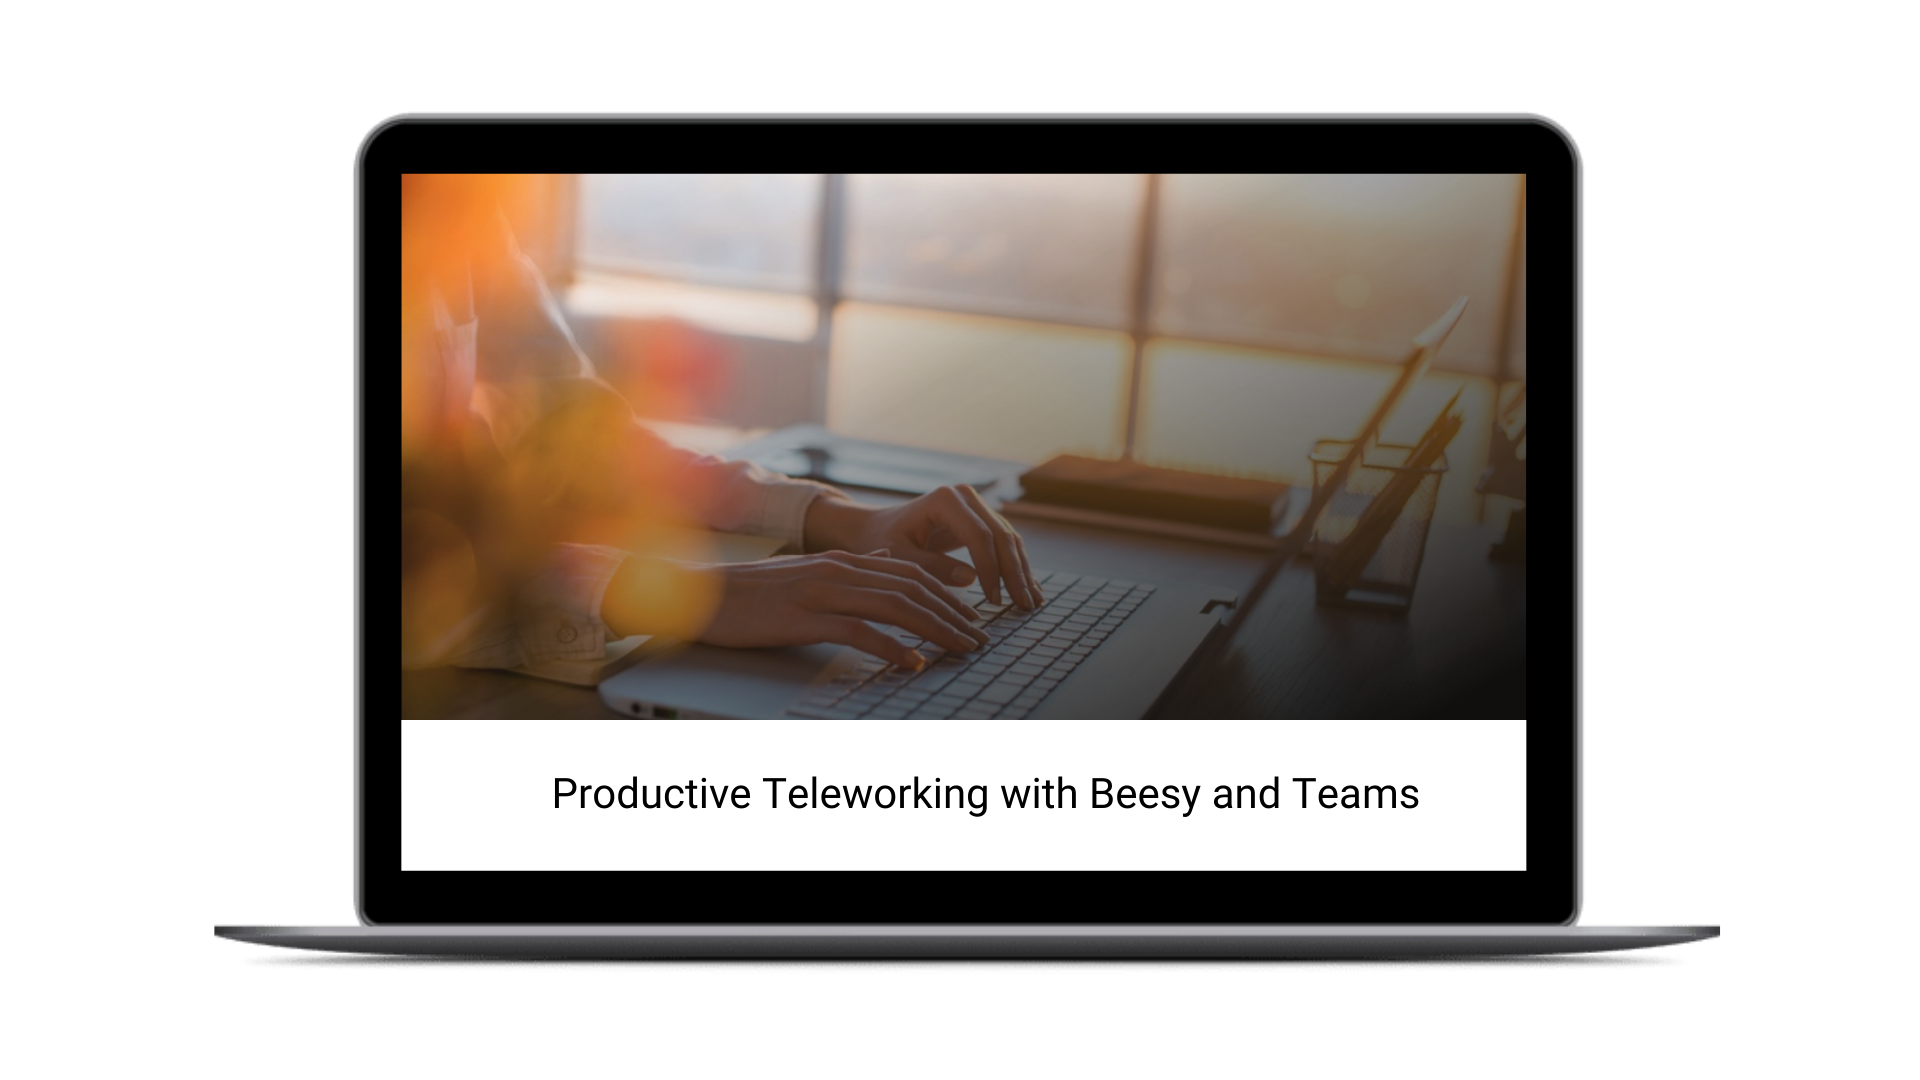 Productive Teleworking with Beesy and Teams